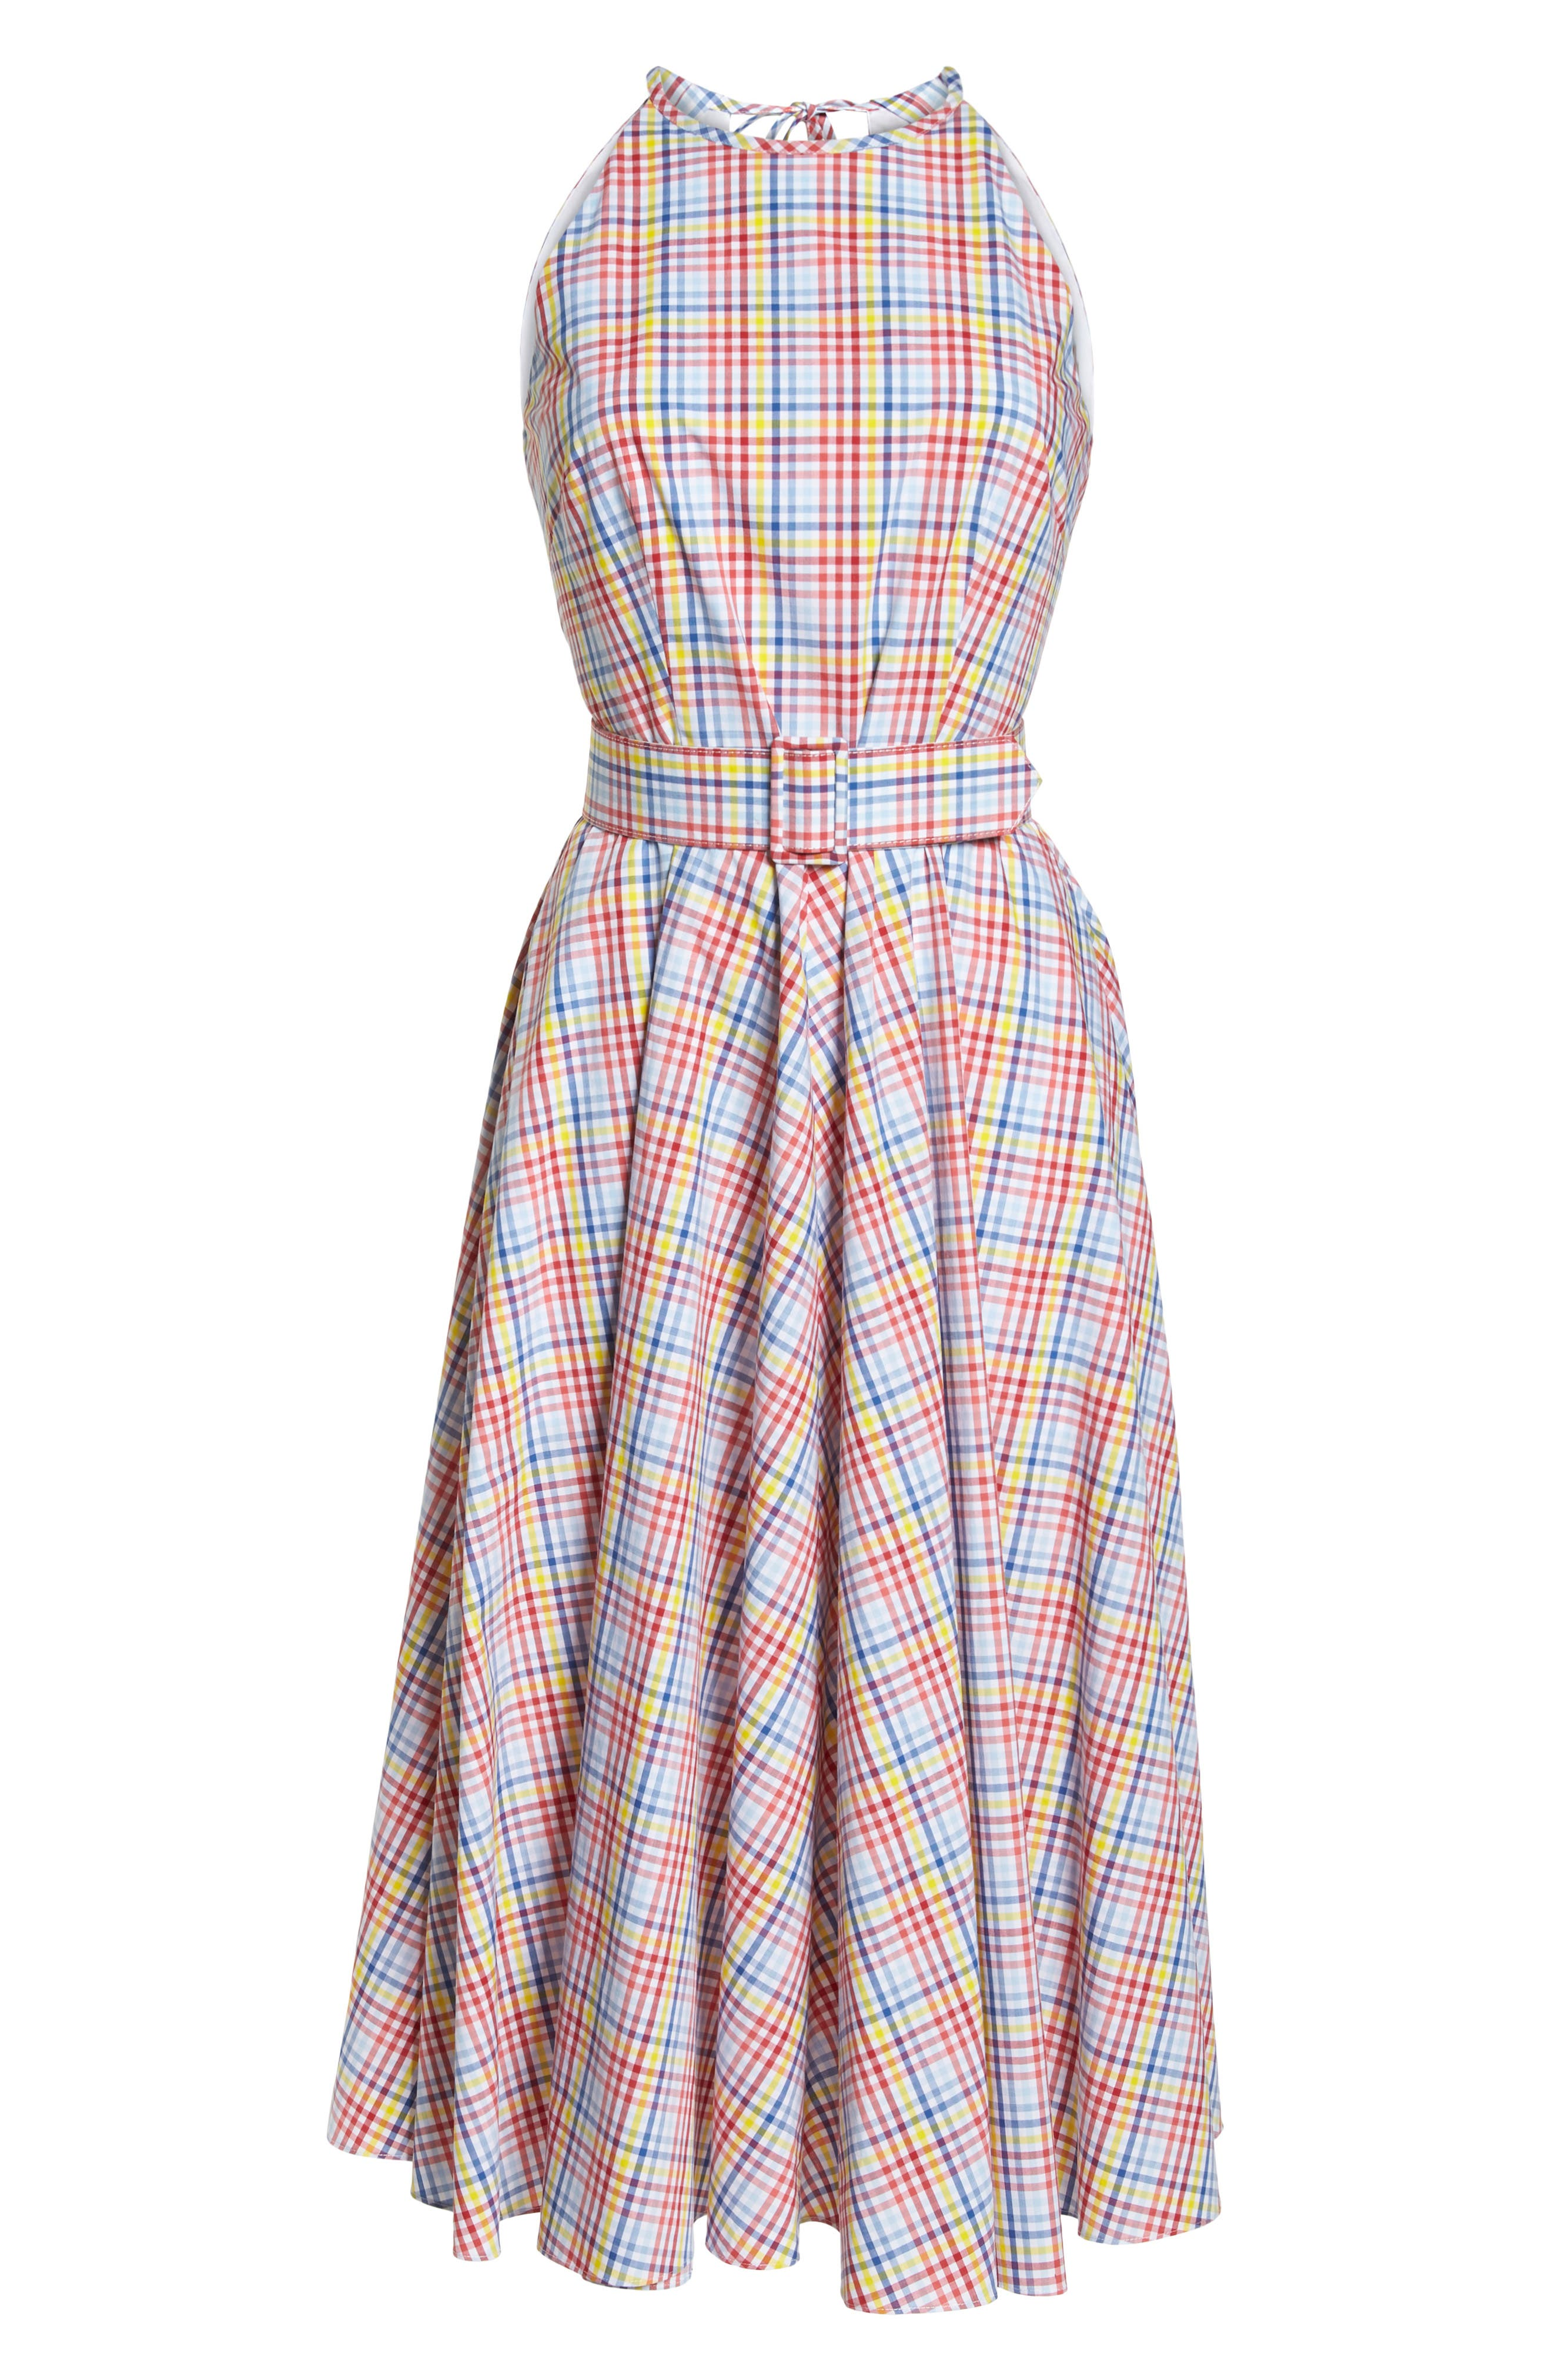 Halter Neck Belted Cotton Sundress,                             Alternate thumbnail 7, color,                             Red/ Yellow